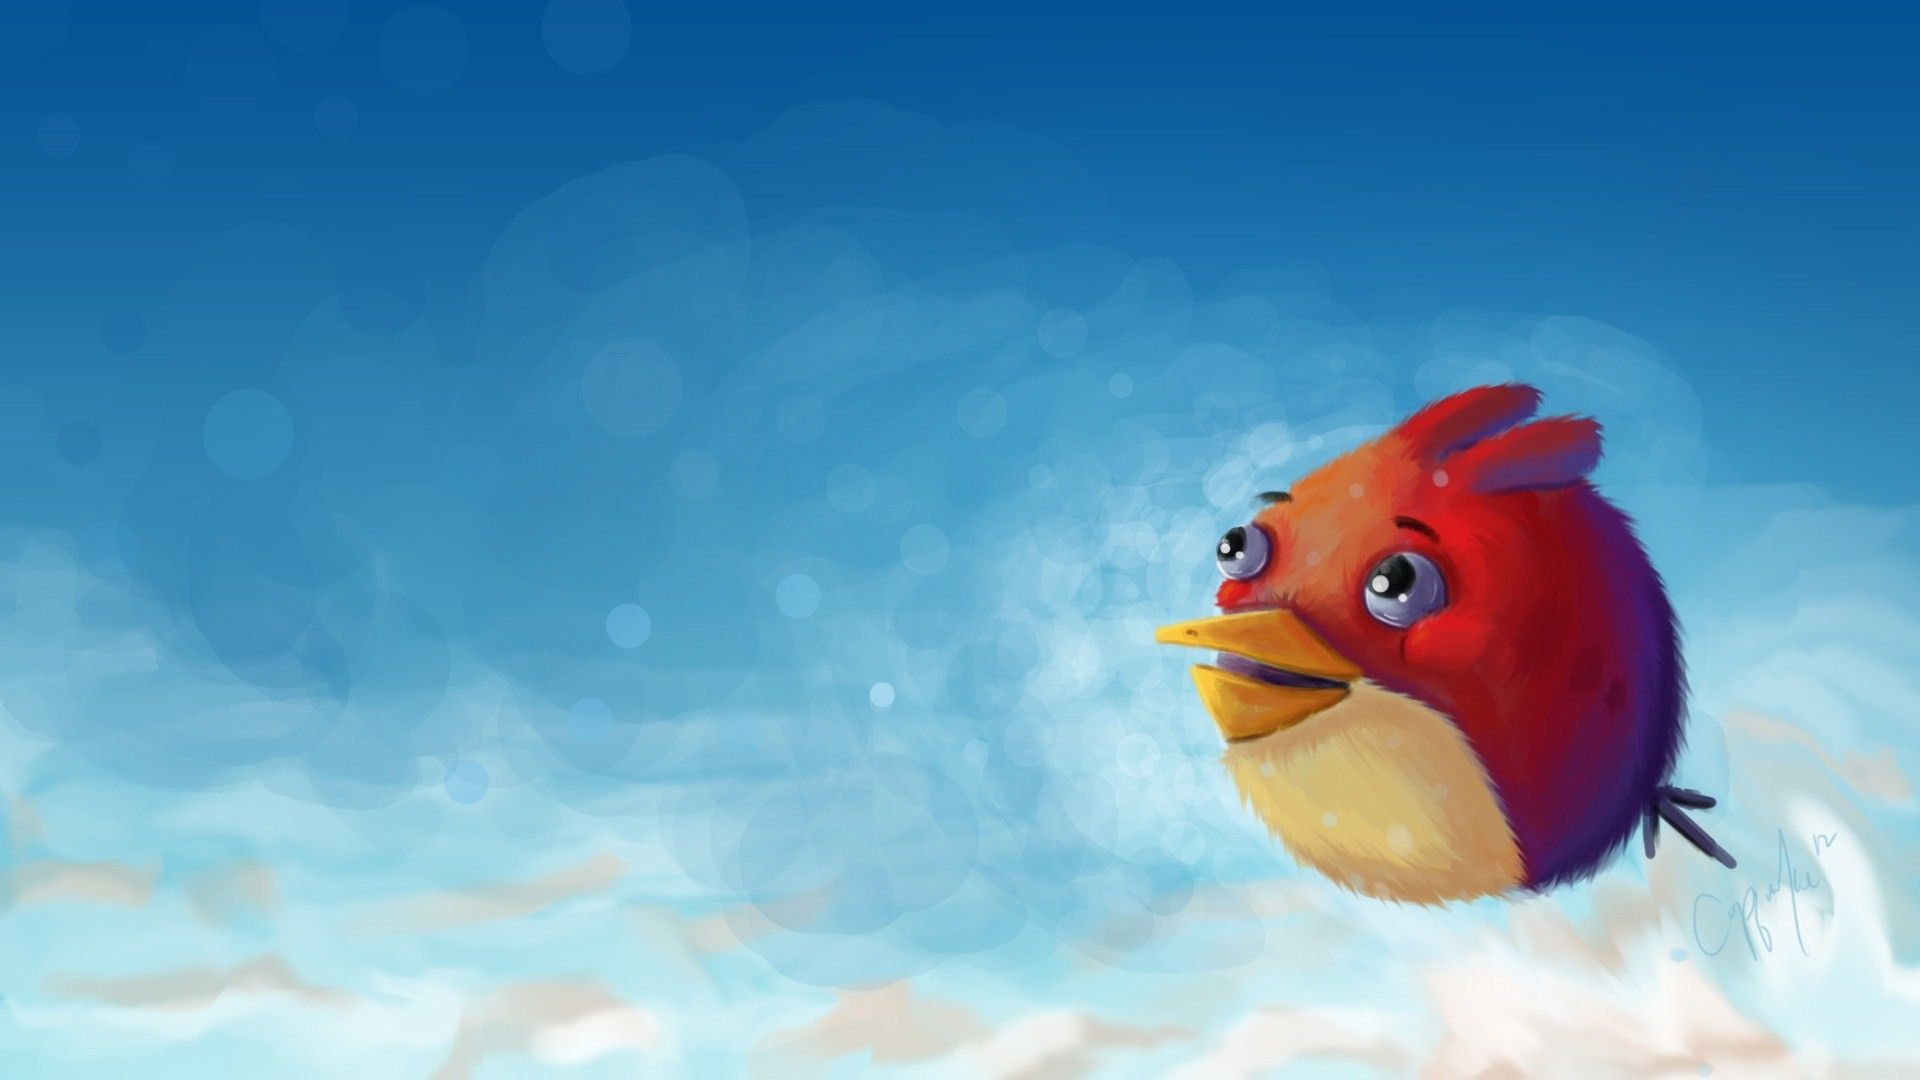 Angry Bird Art HD 1080p Wallpapers Download